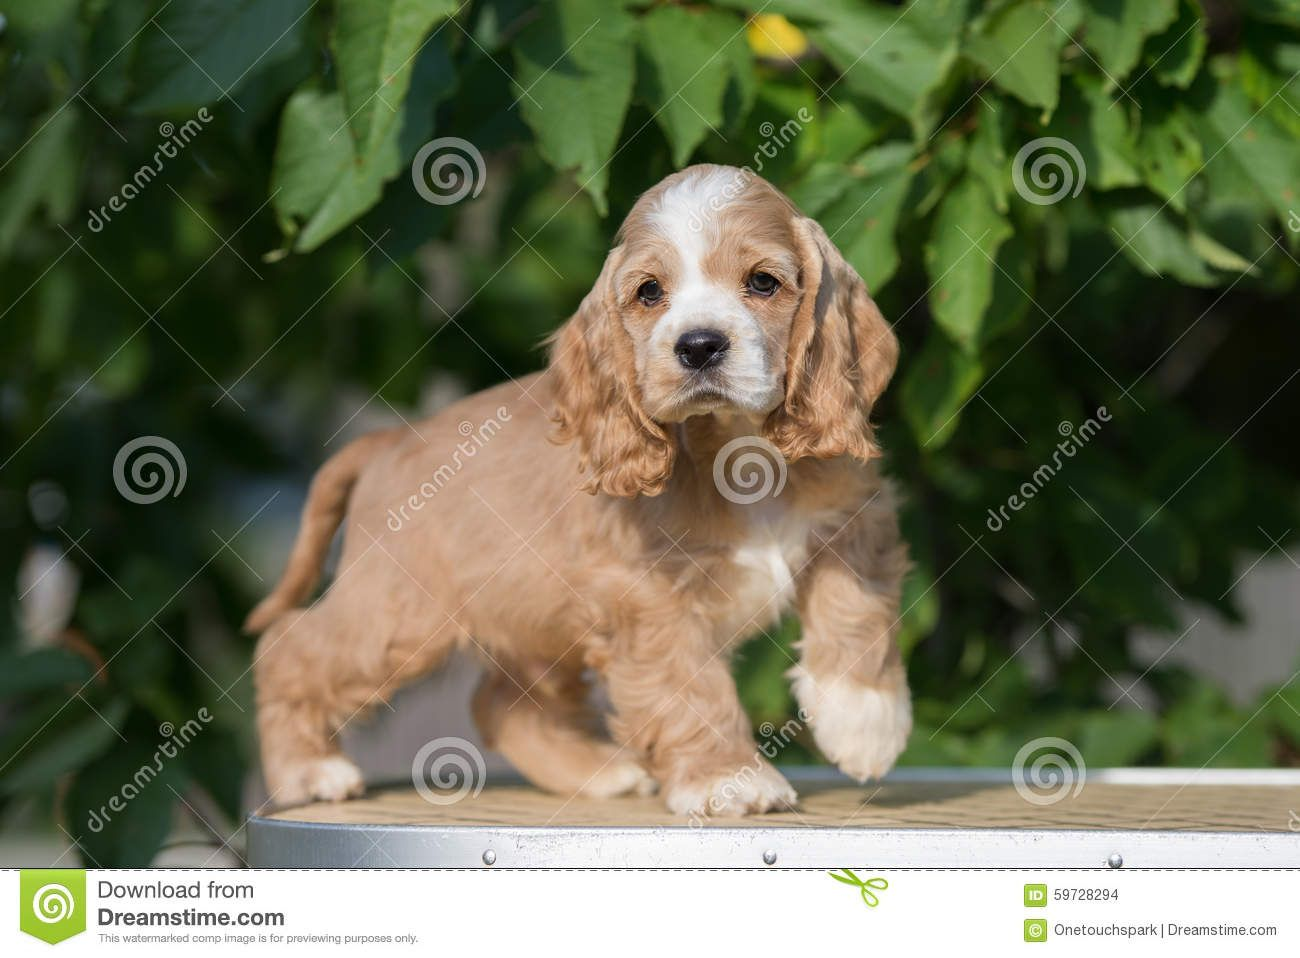 Red And White American Cocker Spaniel Puppy Download From Over 68 Million High Quality Stock P Spaniel Puppies Cocker Spaniel Puppies American Cocker Spaniel